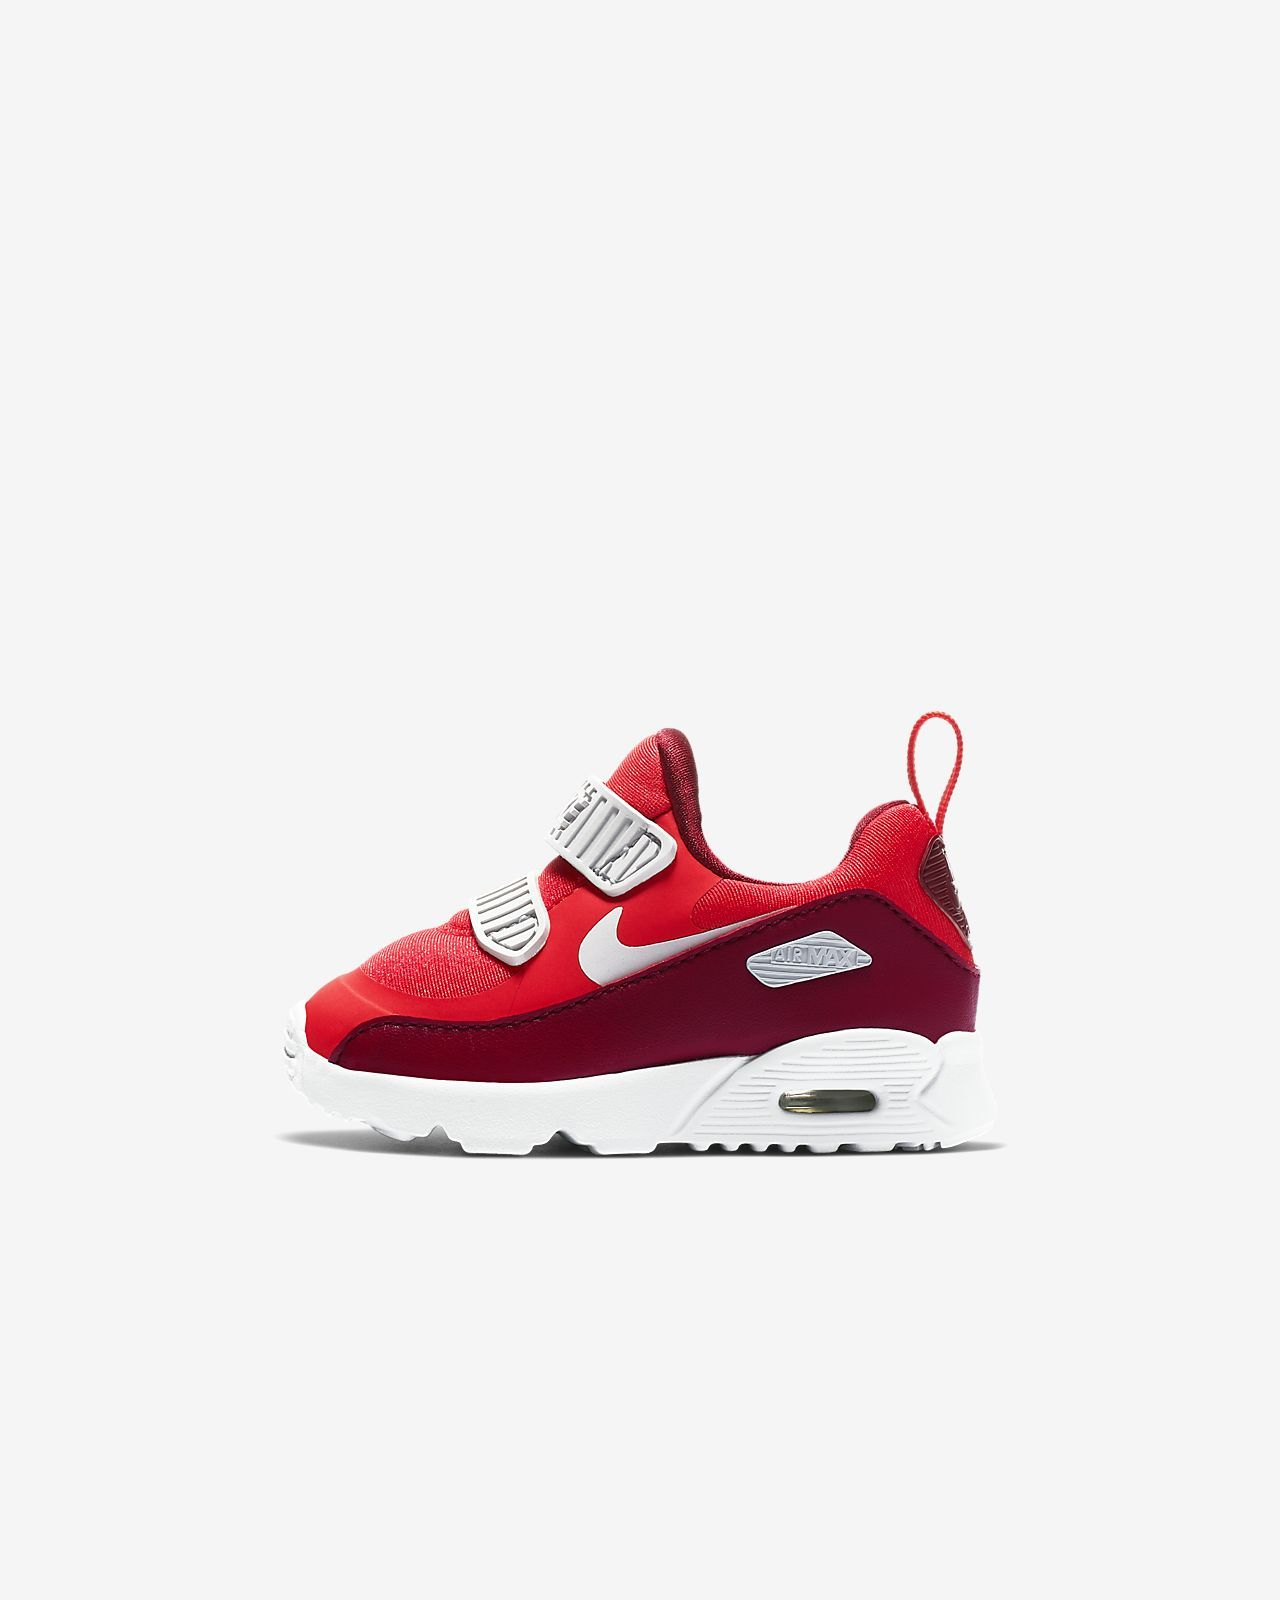 promo code 2b8a2 fd5ef Nike Air Max Tiny 90 Infant Toddler Shoe